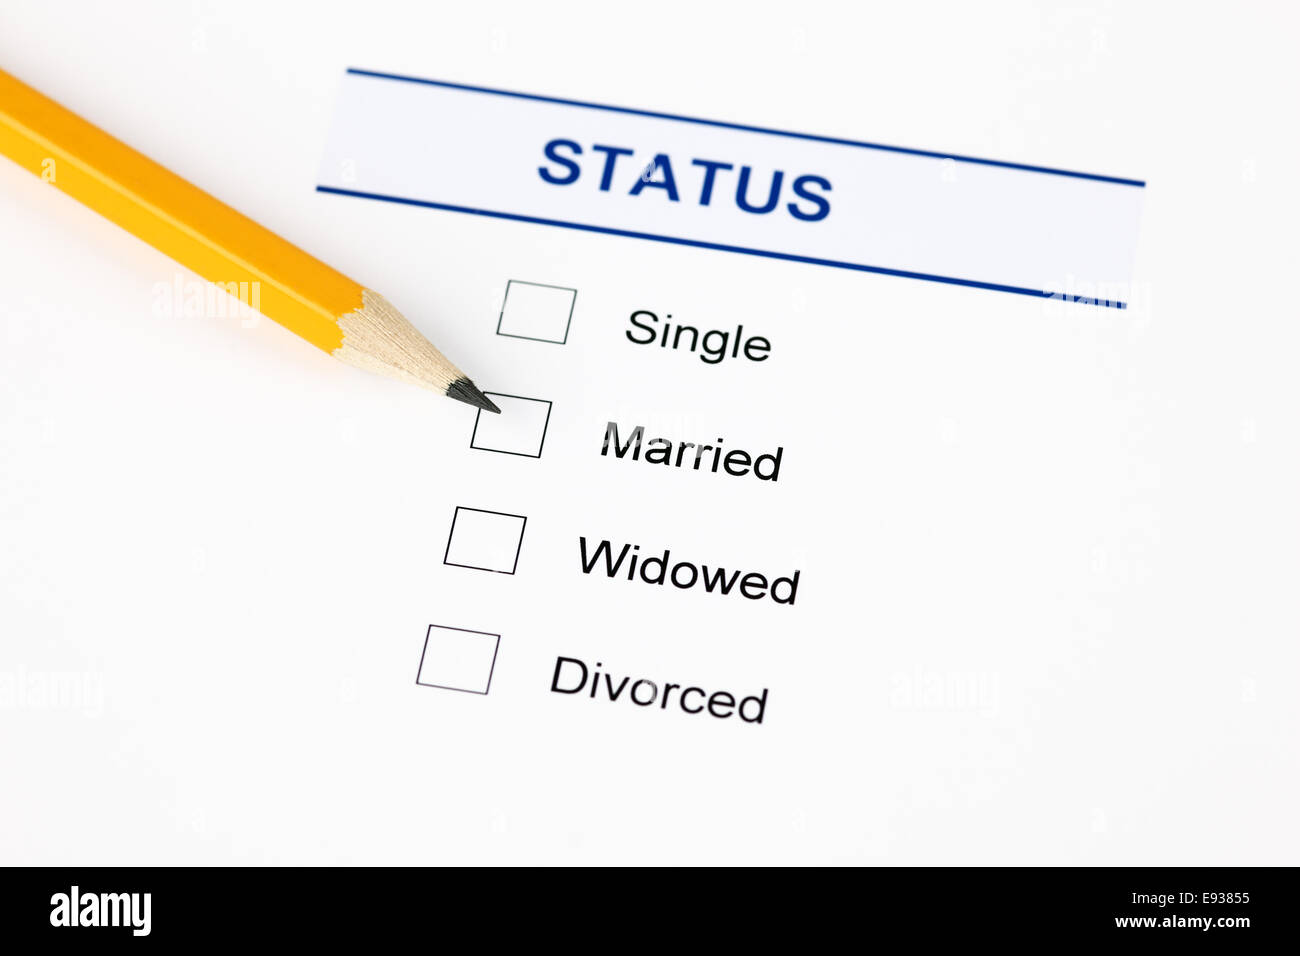 Marital Status High Resolution Stock Photography And Images Alamy